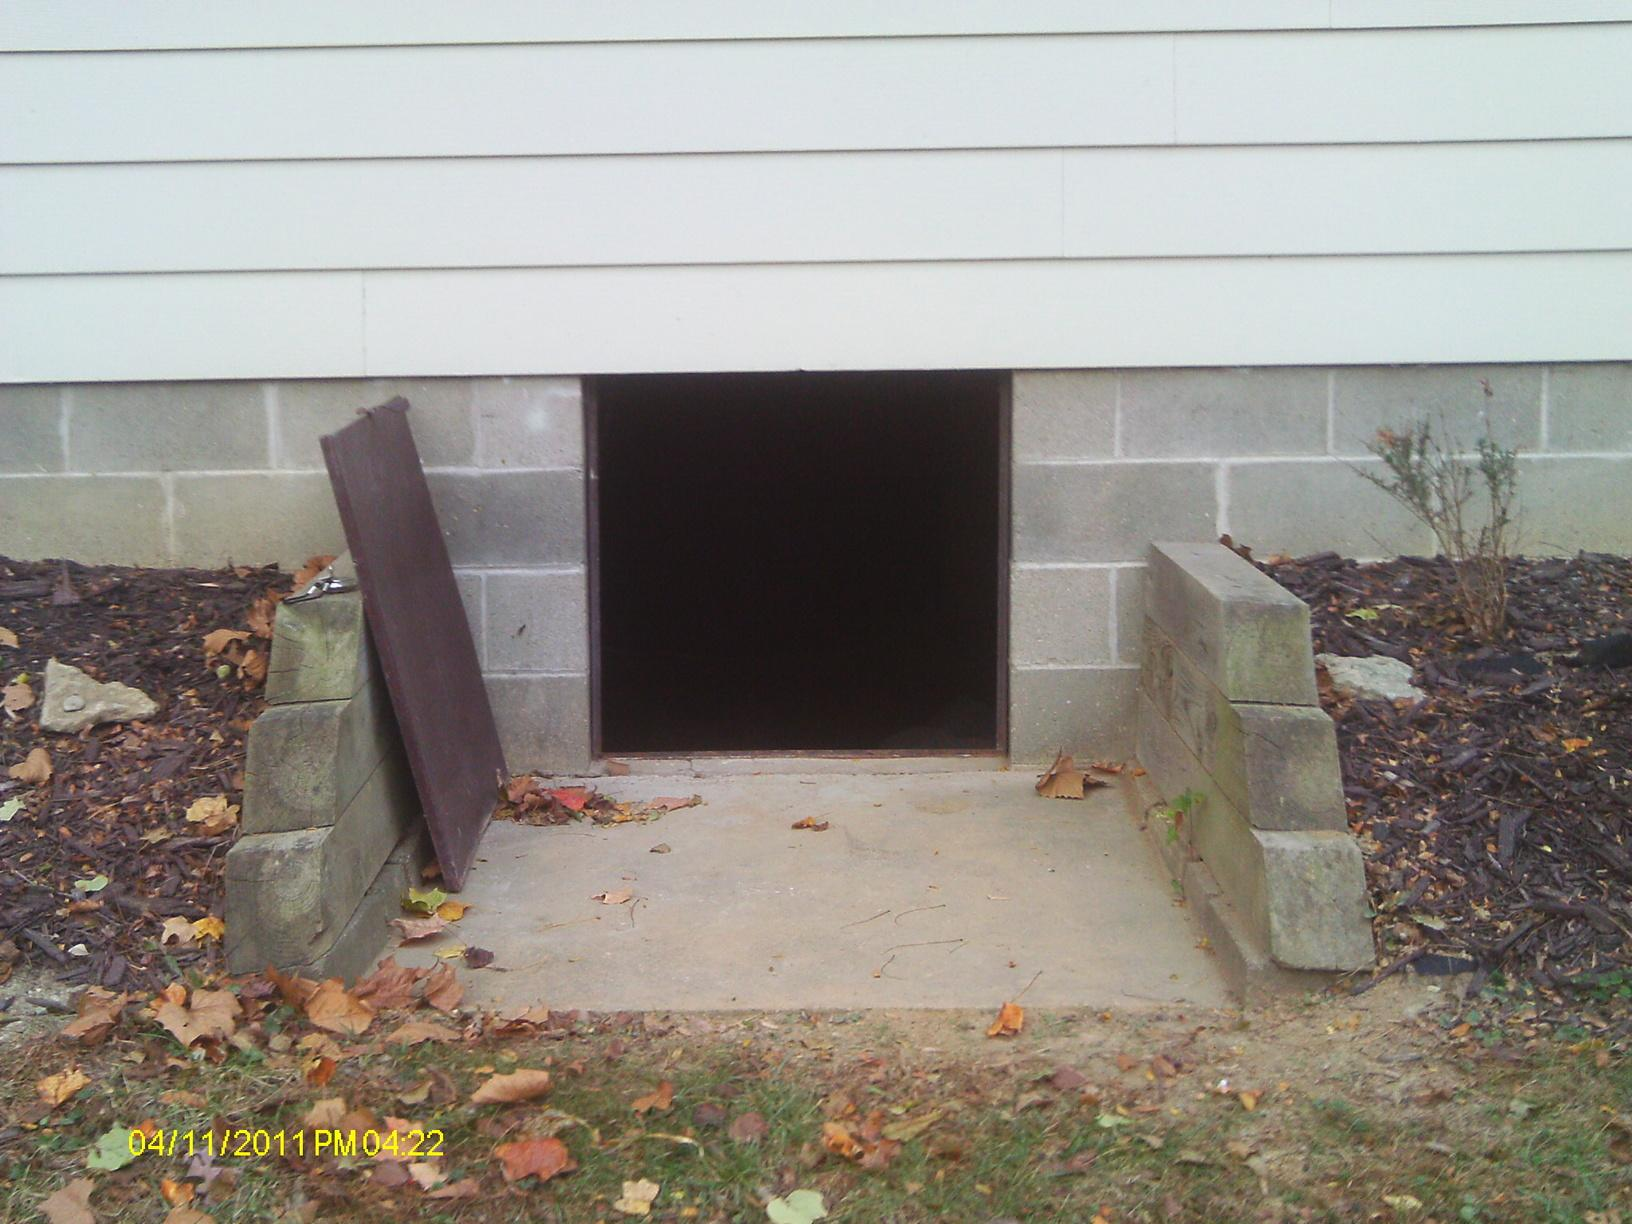 Entrance to the crawlspace. The team does it's best to cause minimal disturbance to the home and so will typically designate one entrance/exit during the project.